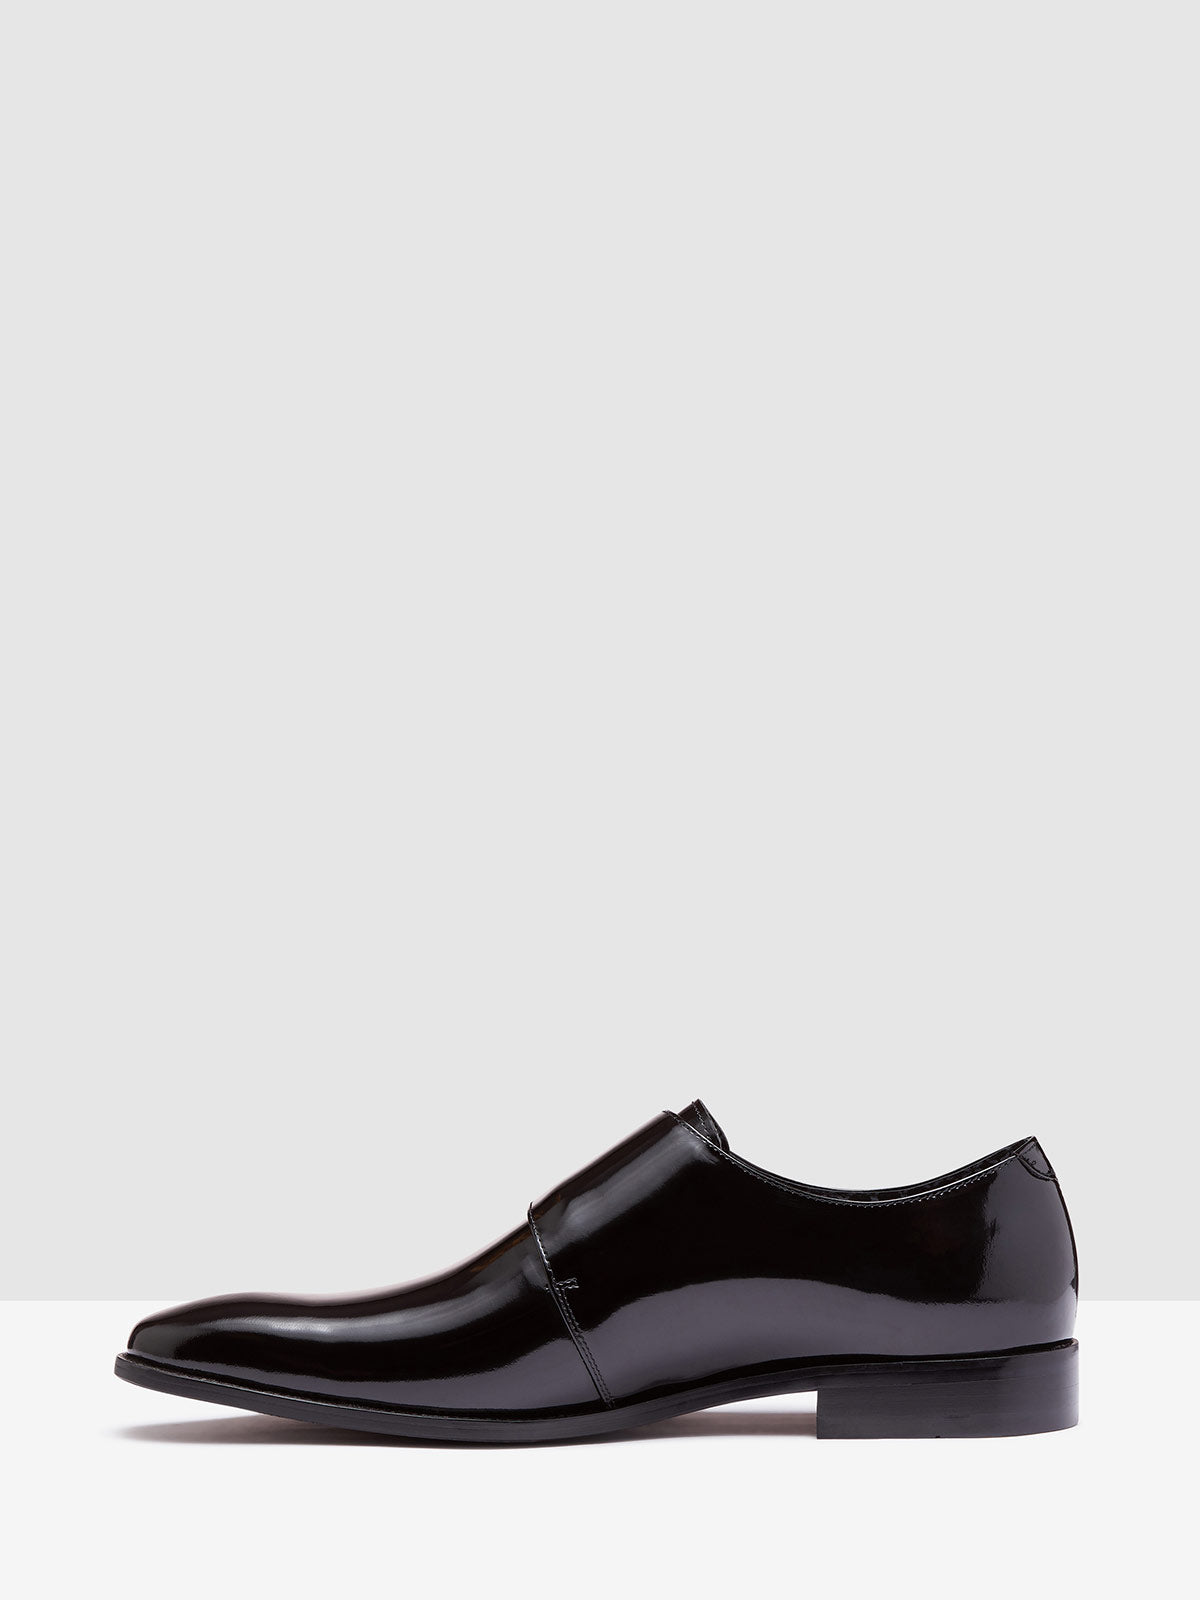 FREDRICHO HS LEATHER MONK SHOE BLACK